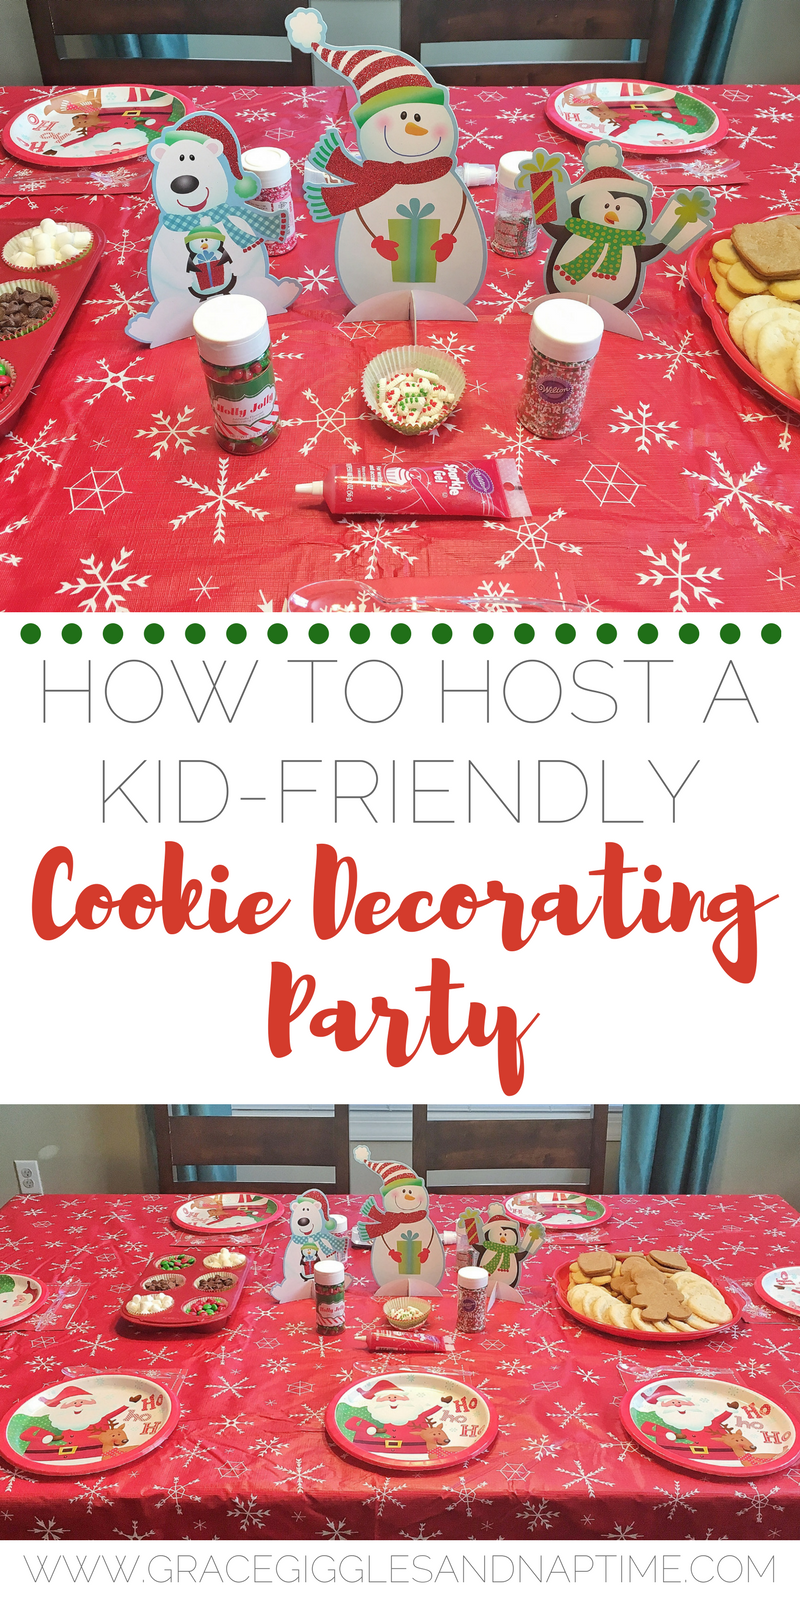 How to Host A Kid-Friendly Cookie Decorating Party